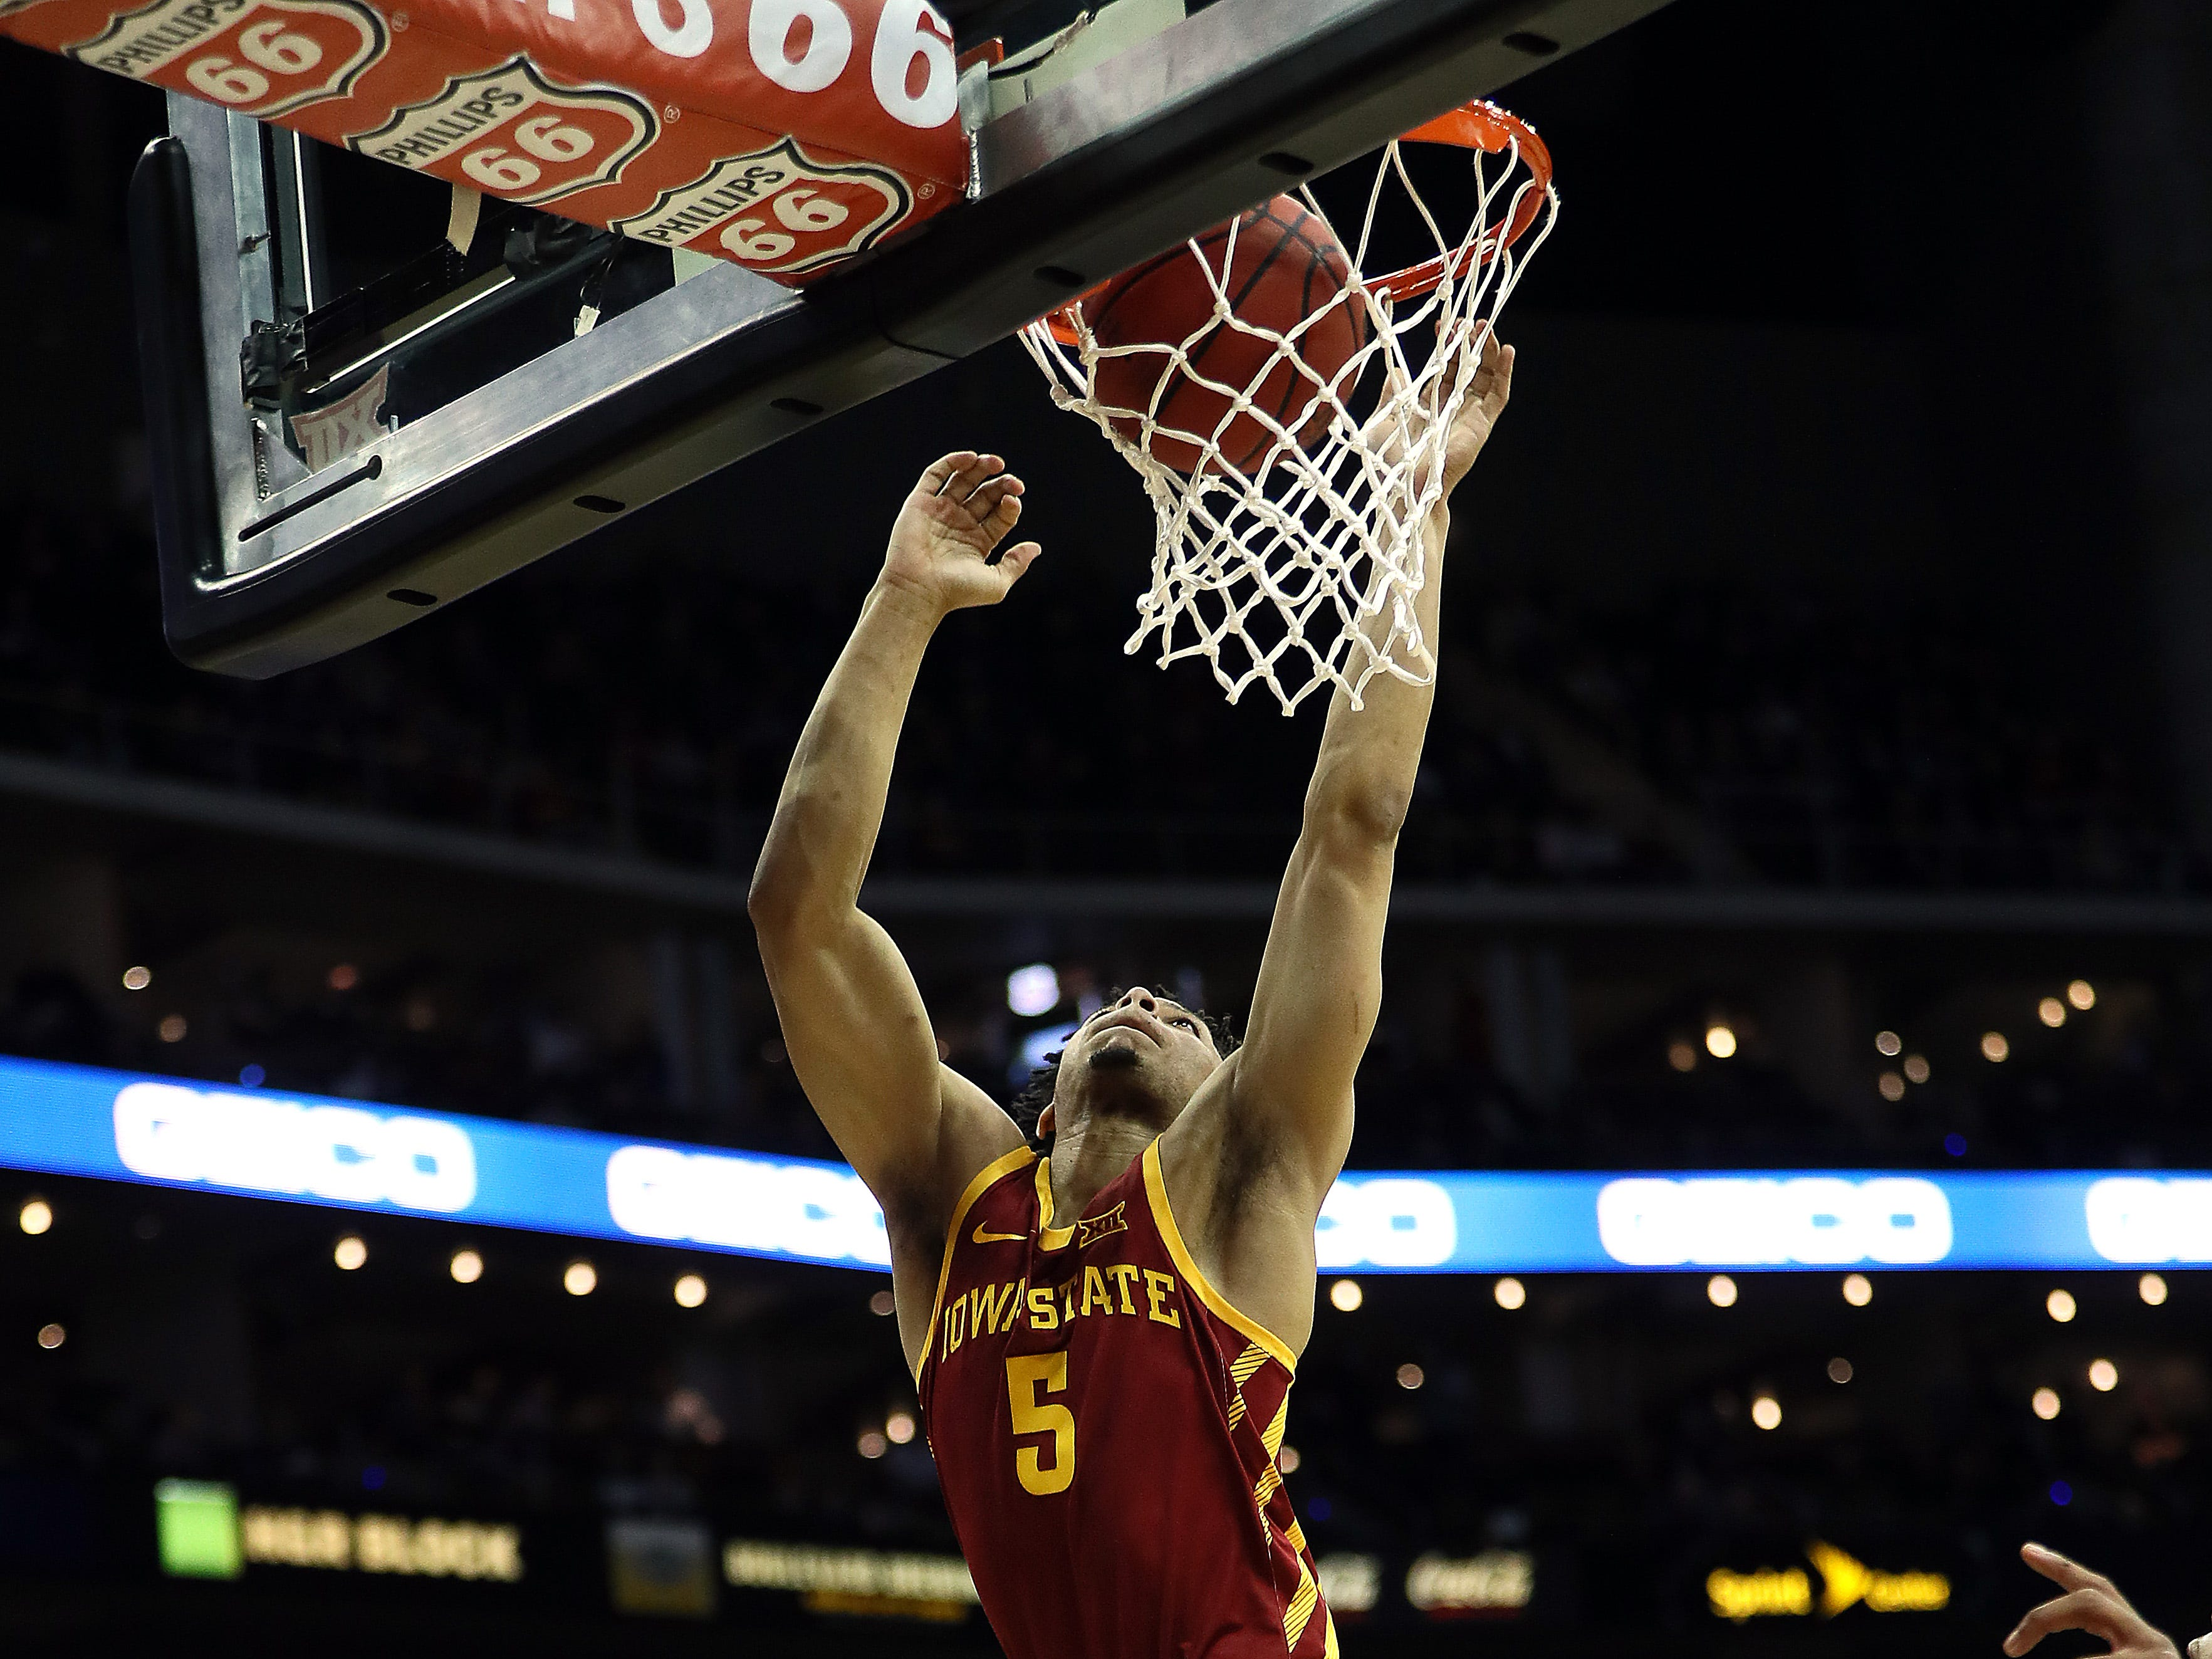 KANSAS CITY, MISSOURI - MARCH 14:  Lindell Wigginton #5 of the Iowa State Cyclones scores during the quarterfinal game of the Big 12 Basketball Tournament against the Baylor Bears at Sprint Center on March 14, 2019 in Kansas City, Missouri. (Photo by Jamie Squire/Getty Images)